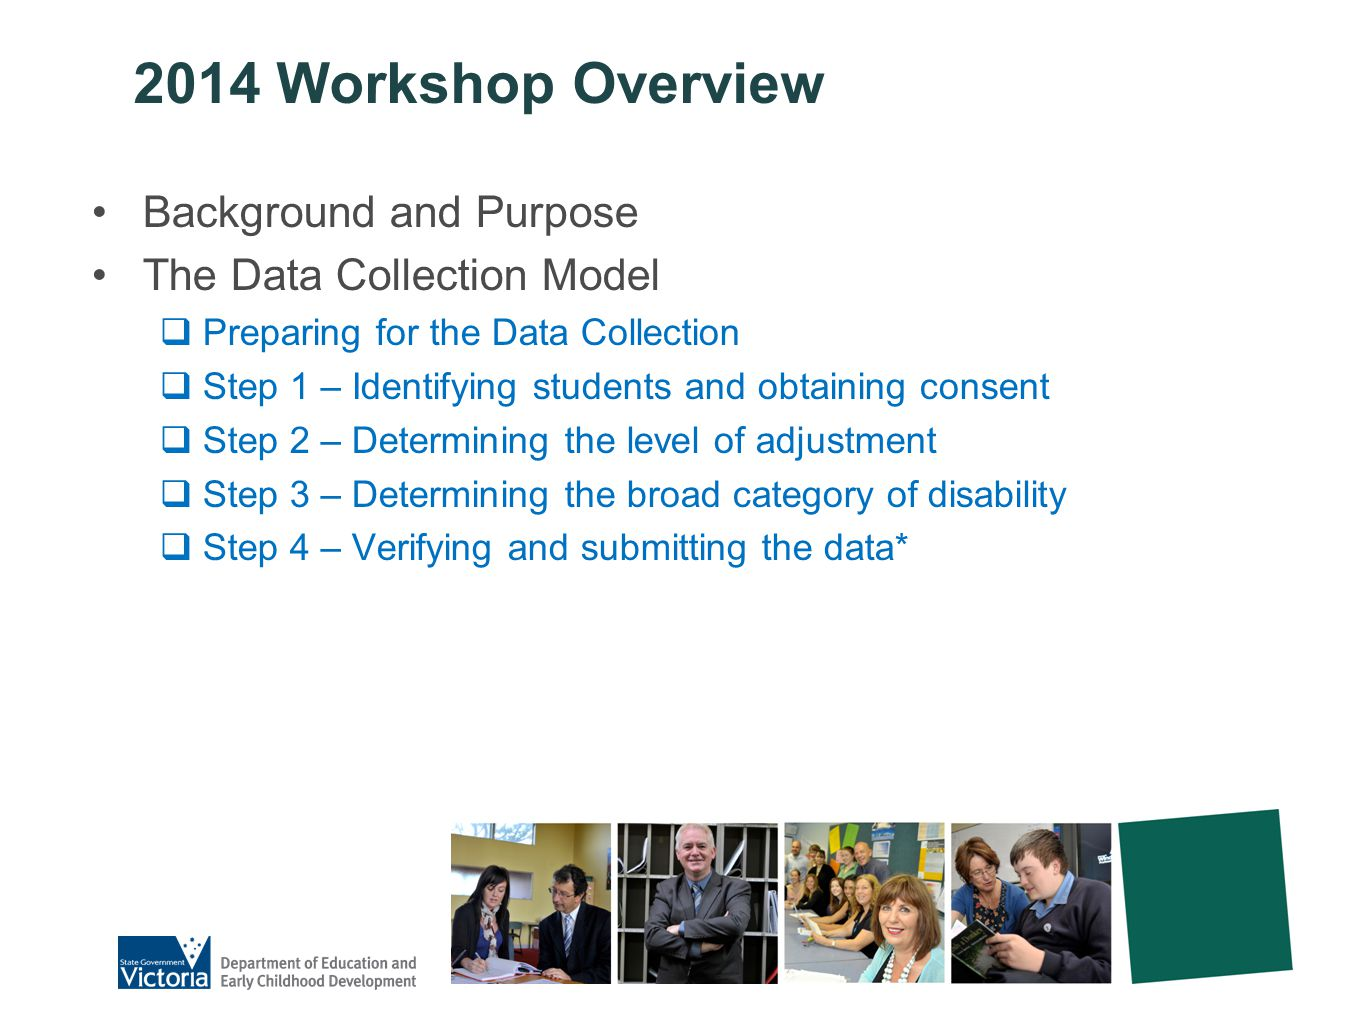 2014 Workshop Overview Background and Purpose The Data Collection Model  Preparing for the Data Collection  Step 1 – Identifying students and obtaining consent  Step 2 – Determining the level of adjustment  Step 3 – Determining the broad category of disability  Step 4 – Verifying and submitting the data*